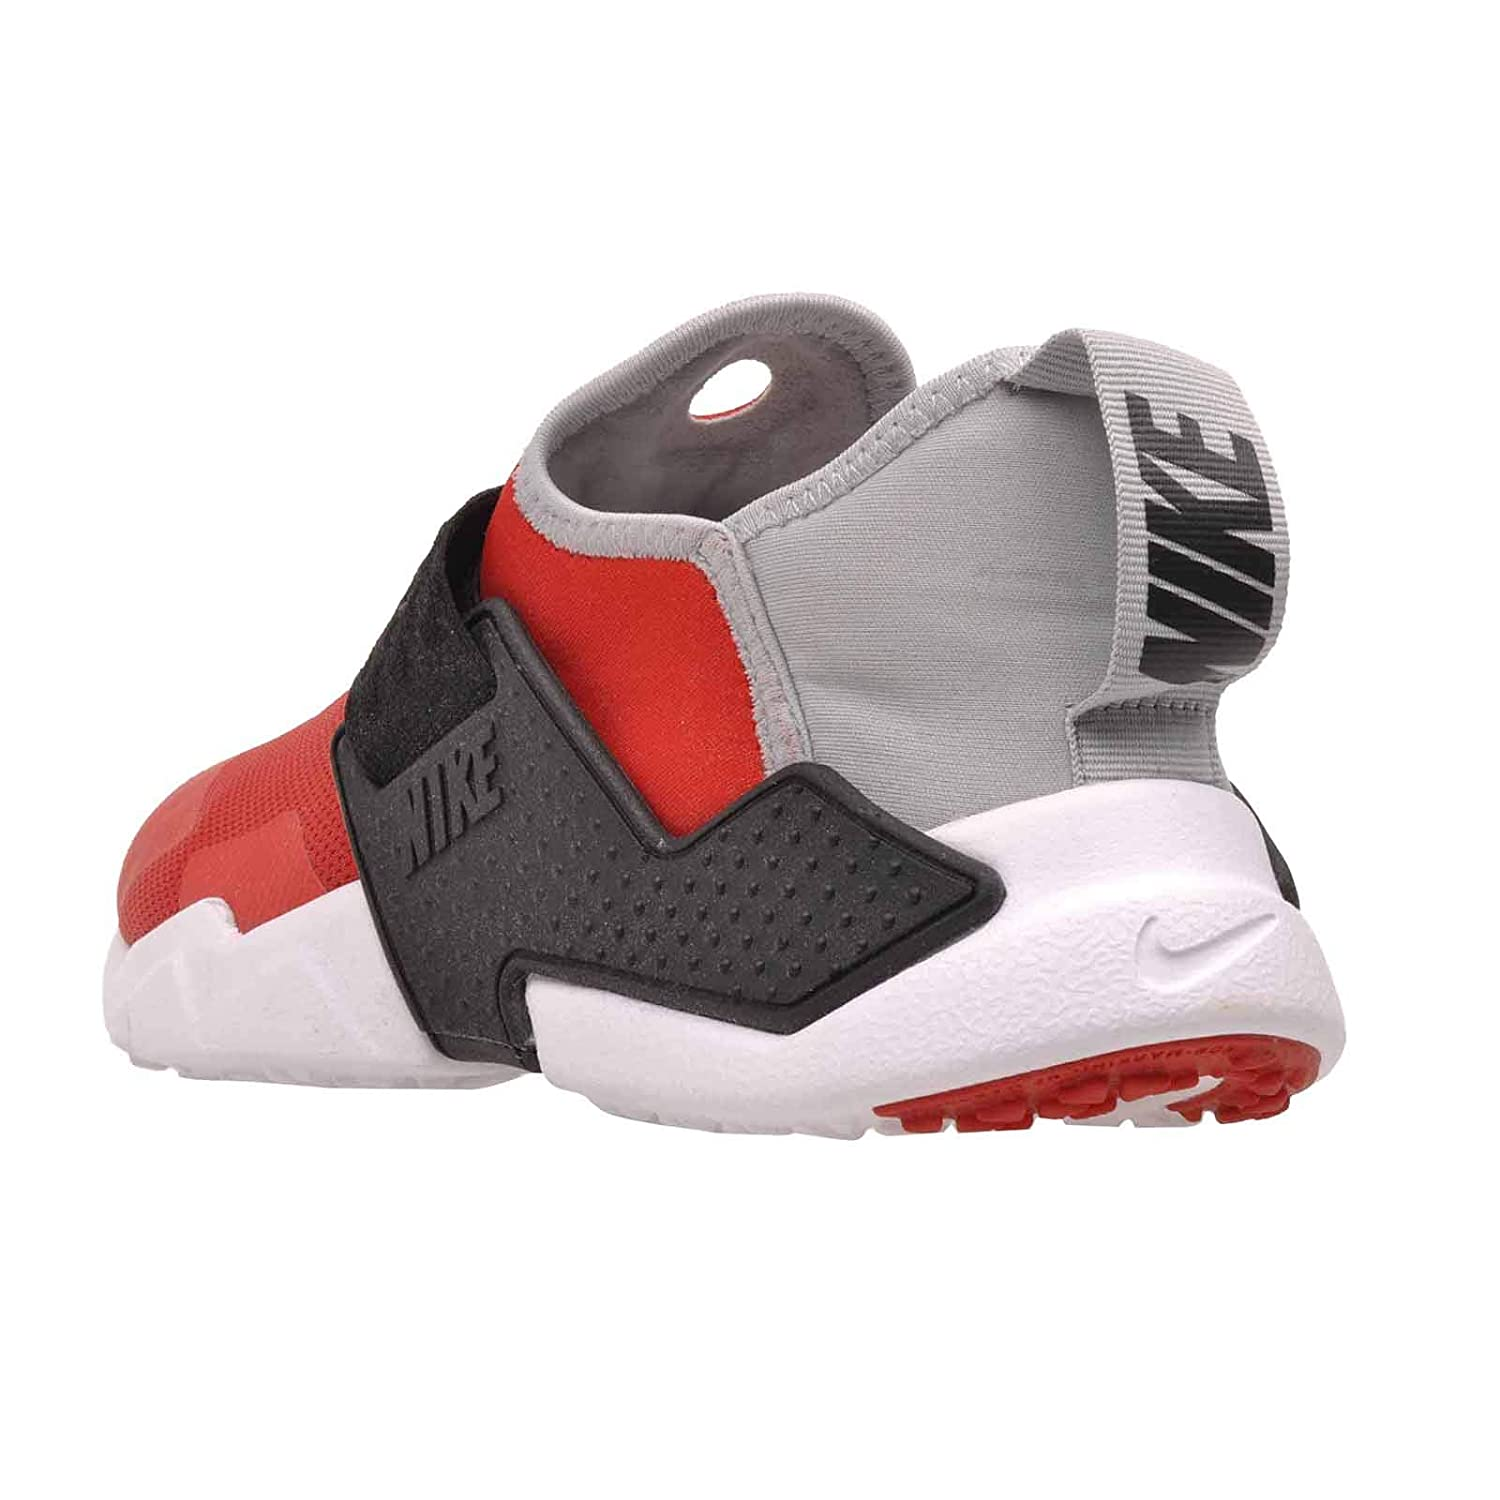 Youth Size 4 University Red//Wolf Grey-Black Nike Kids Huarache Extreme GS